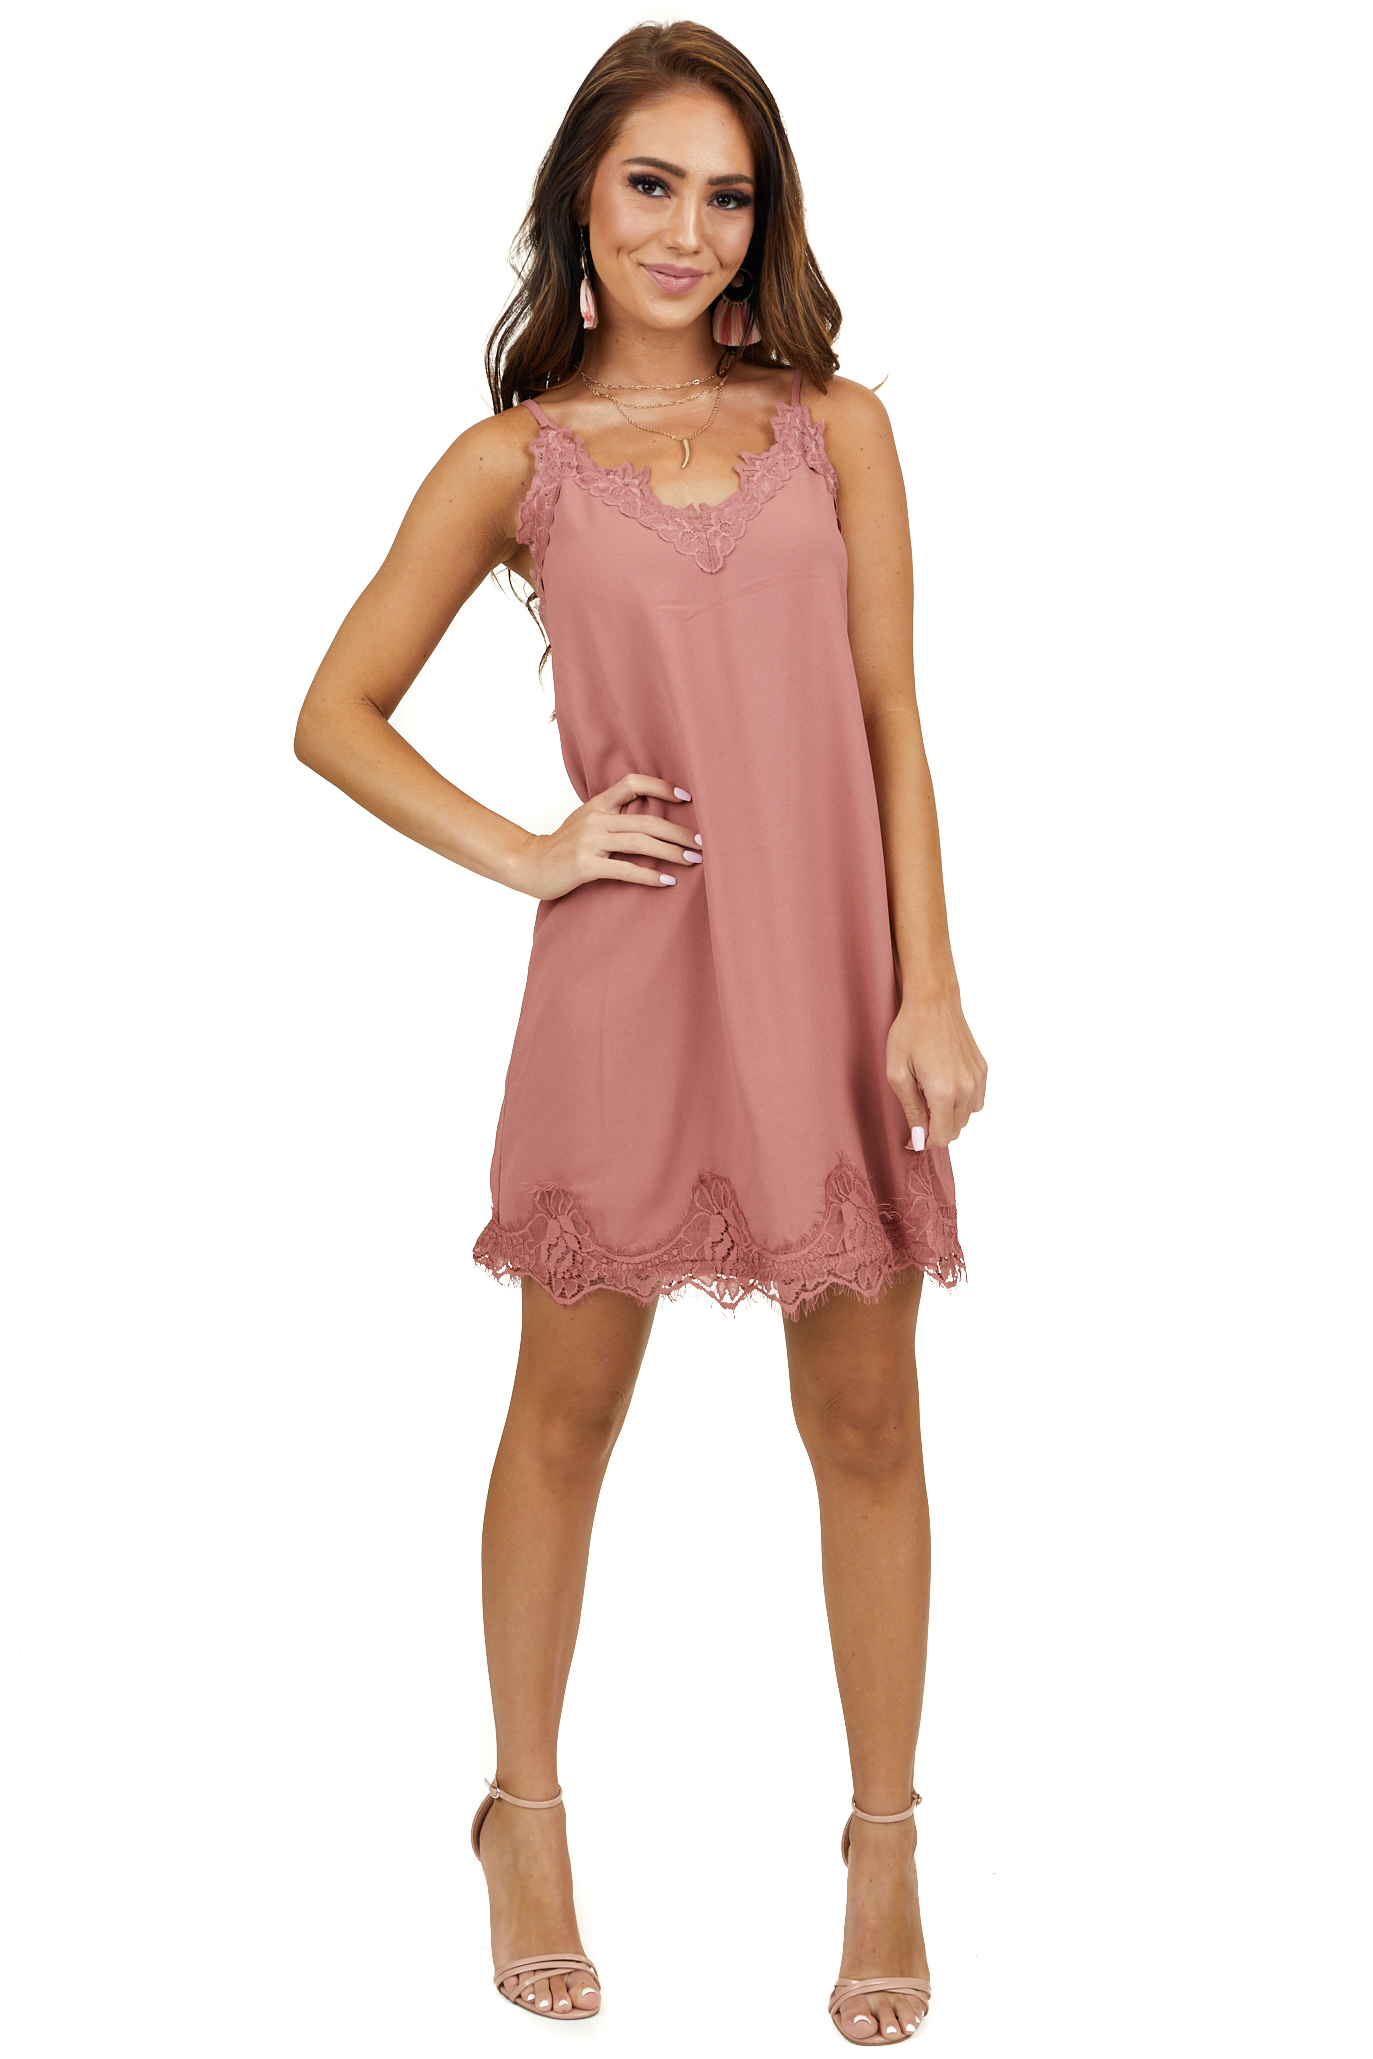 Mauve Sleeveless V Neck Mini Dress with Lace Trim Details